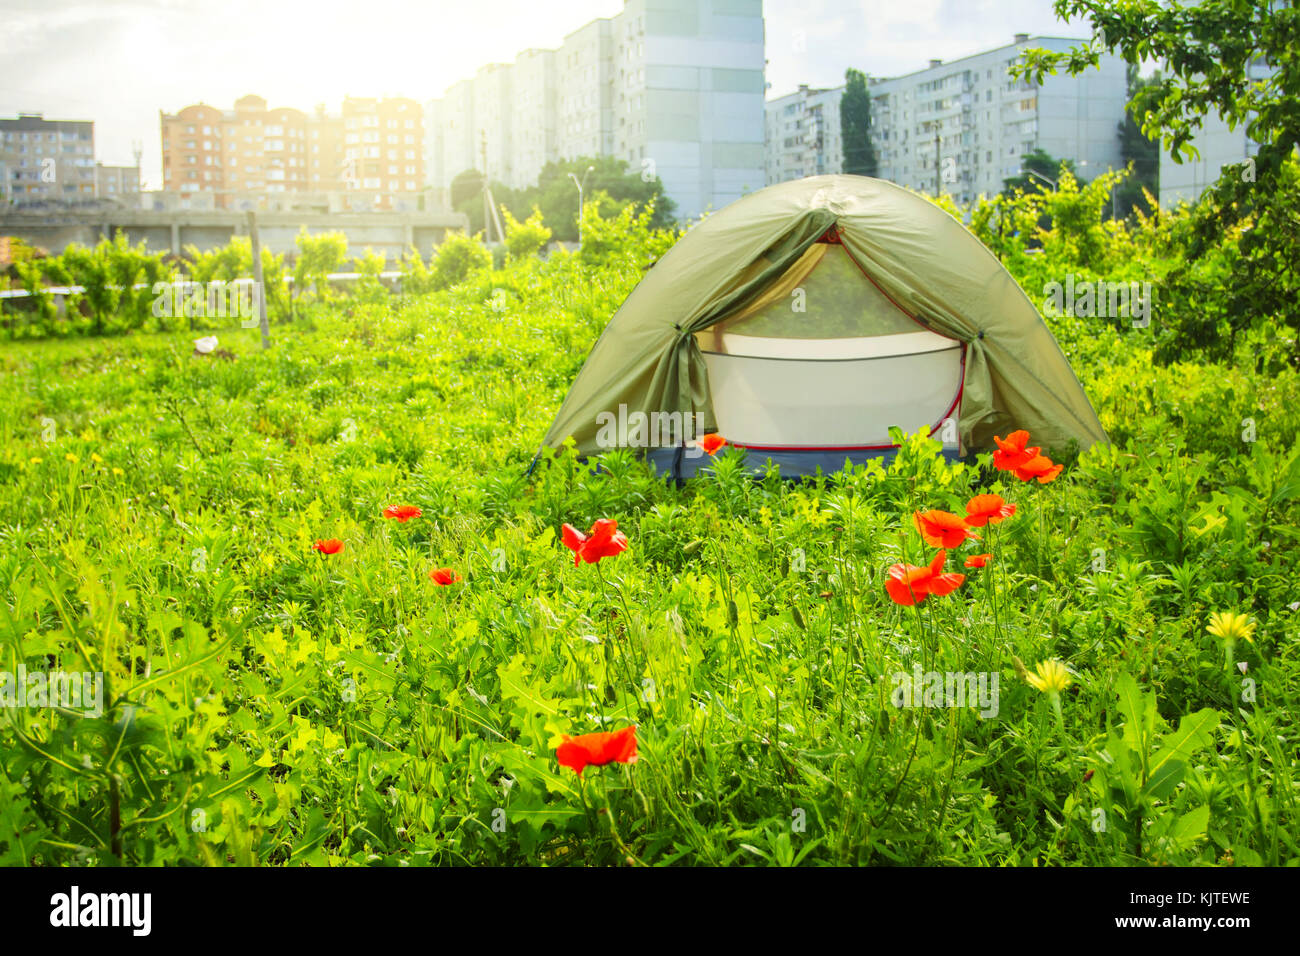 tent in the city in the background of a multistory building - Stock Image